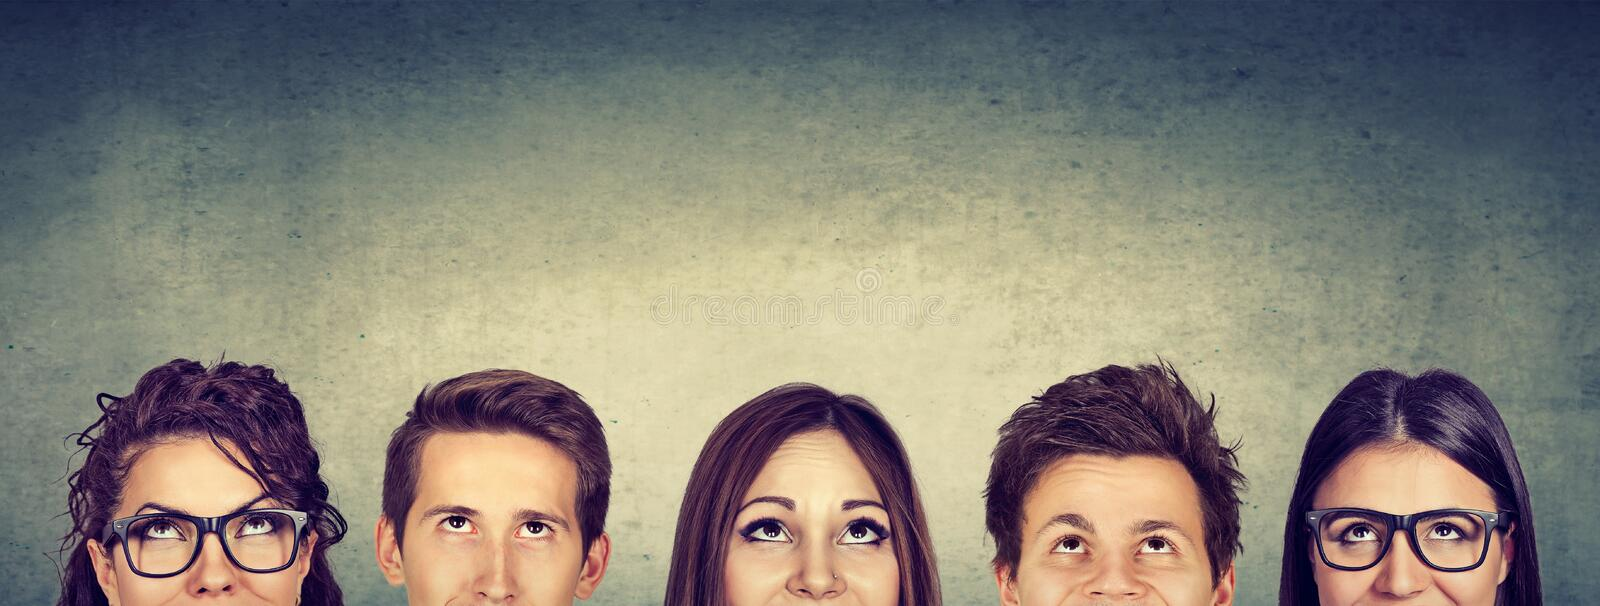 Thoughtful group of people looking up stock photo